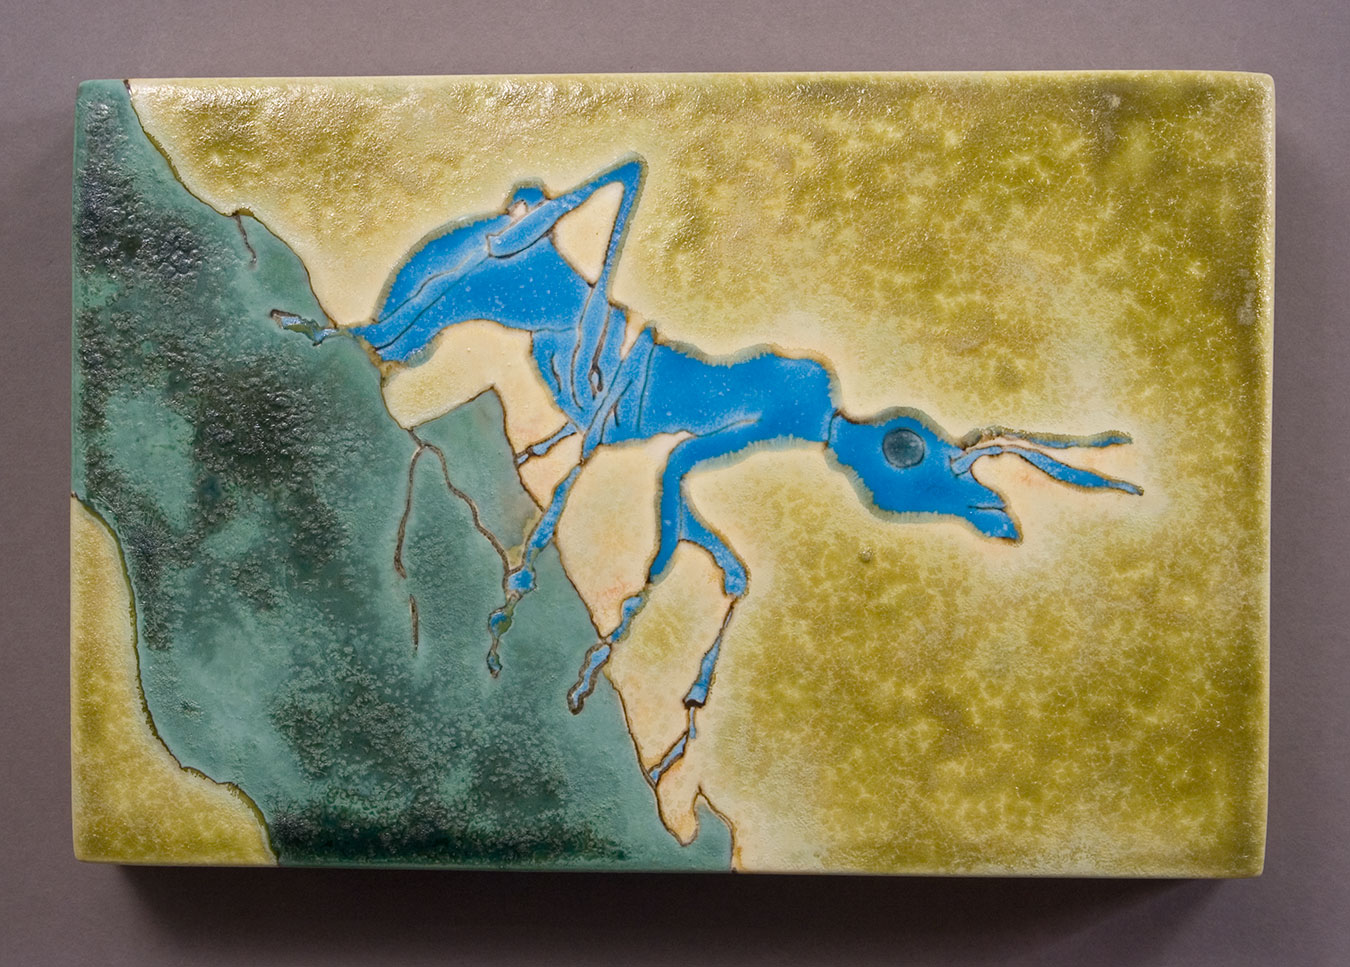 Blue-Ant-Ceramic-Art-Painting-Samantha-Henneke.jpg